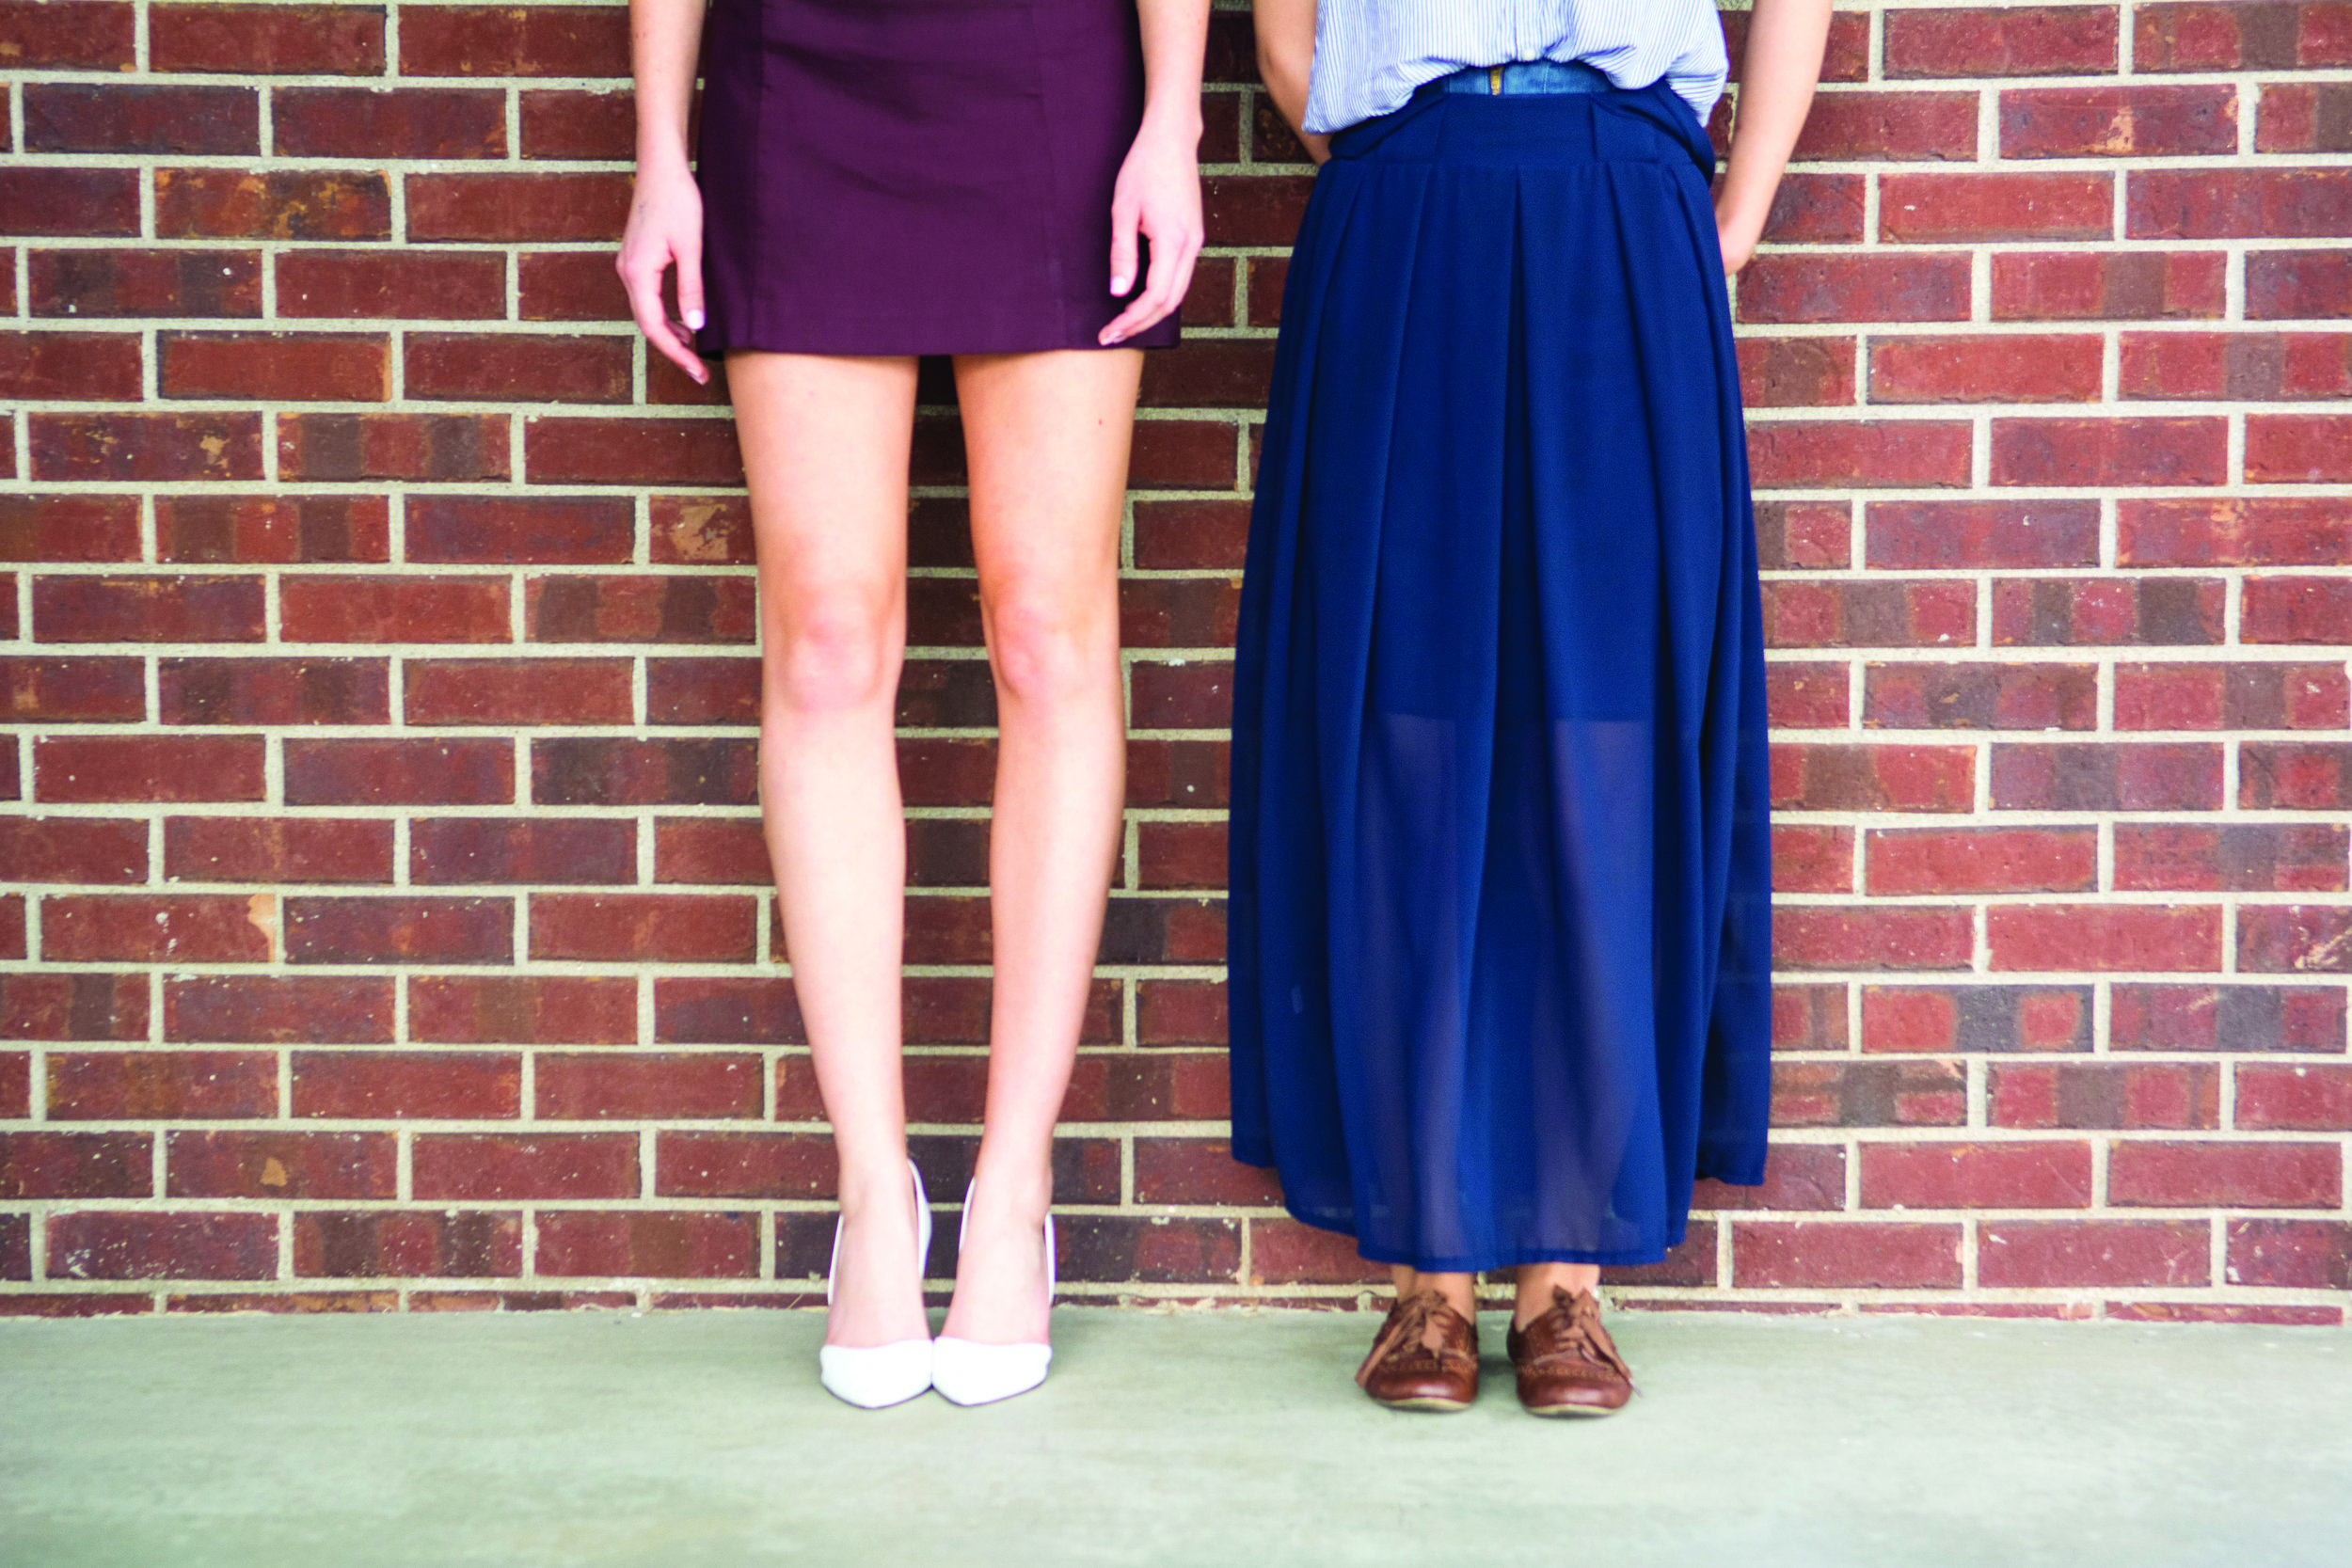 Two students pose to show contrasting styles of dress. | PC: Zach Morrison